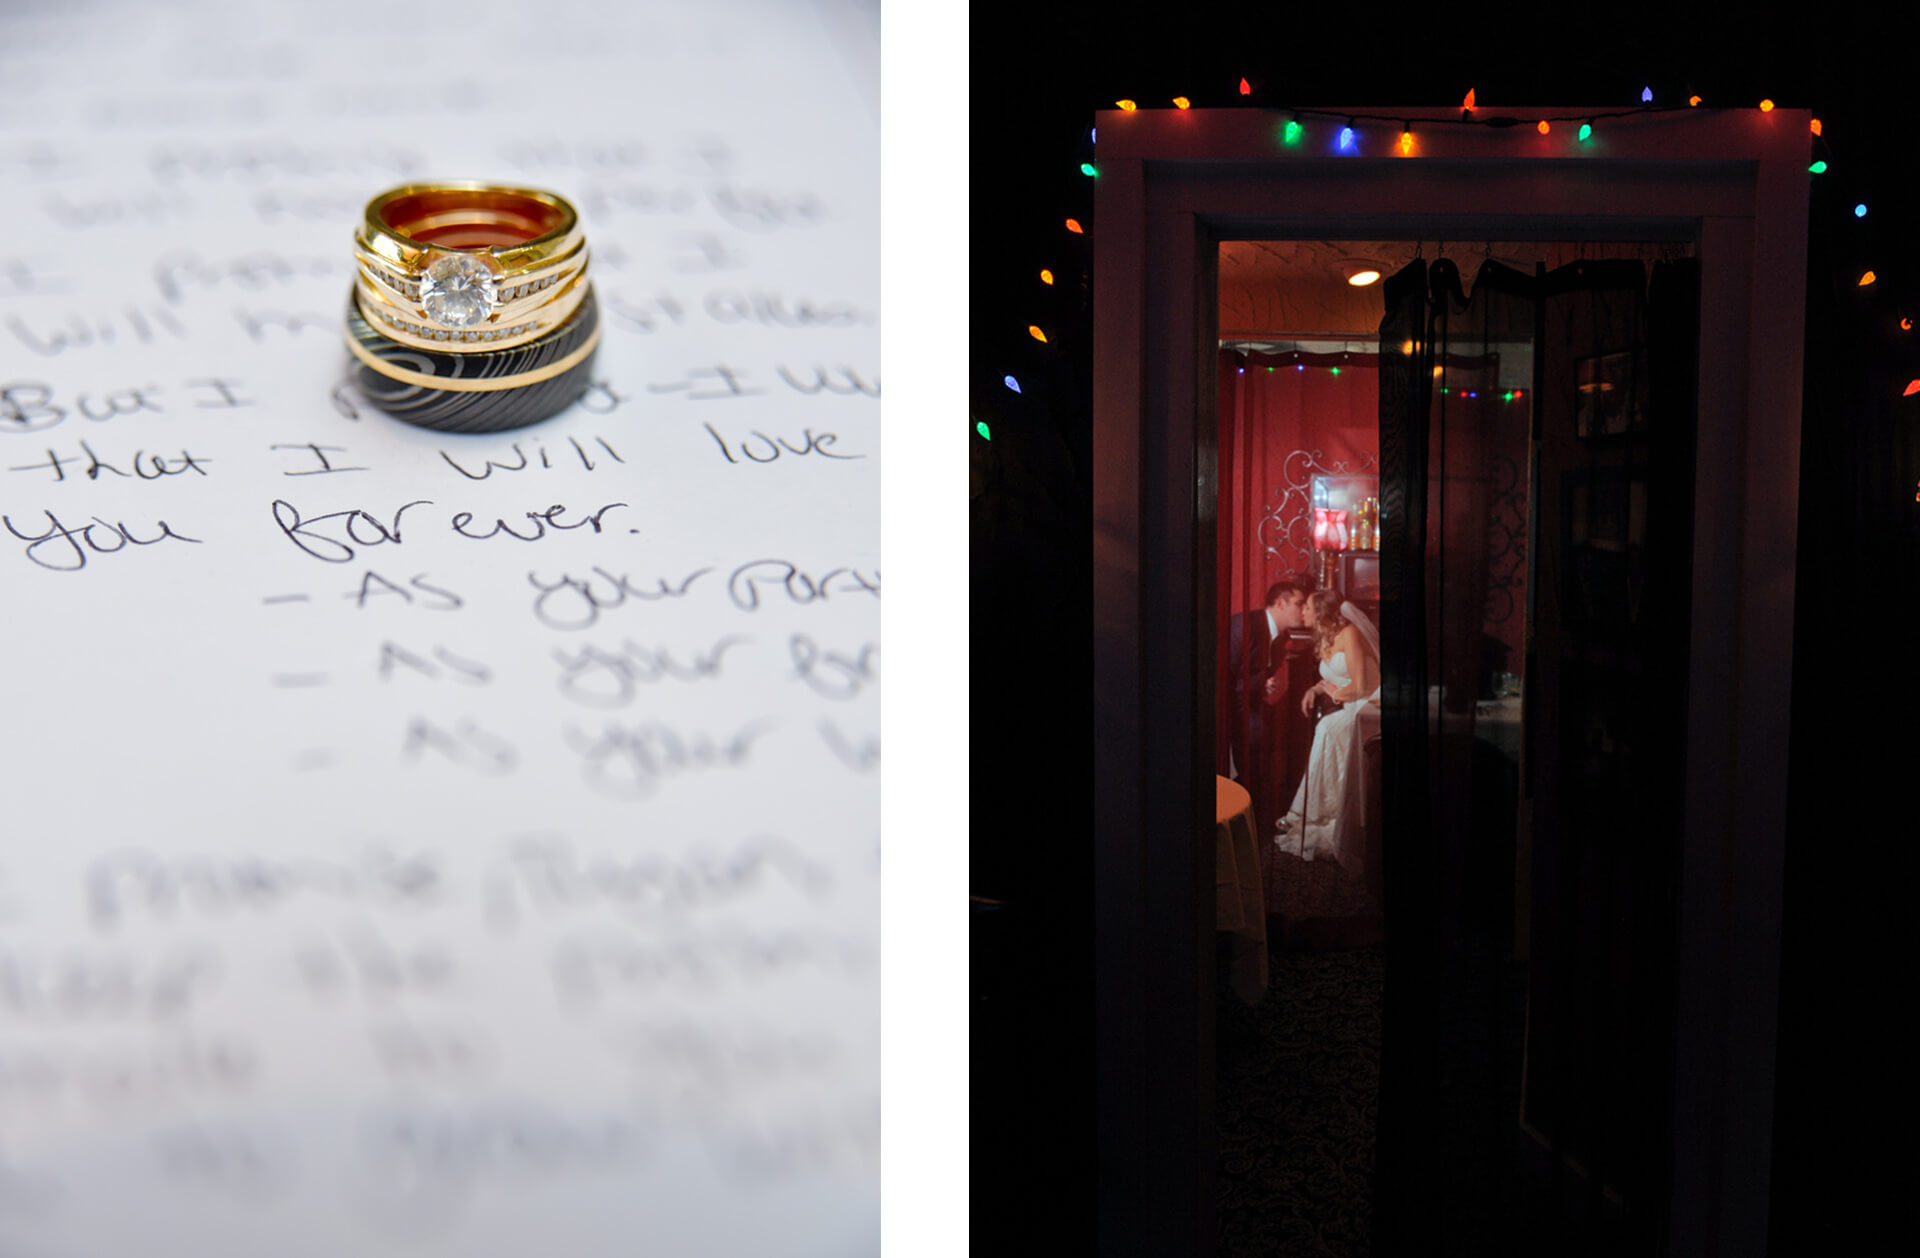 Epic Wedding portrait showing detail photos of rings and a couple snuggling in a private room at Lelli's in Farmington, Michigan.